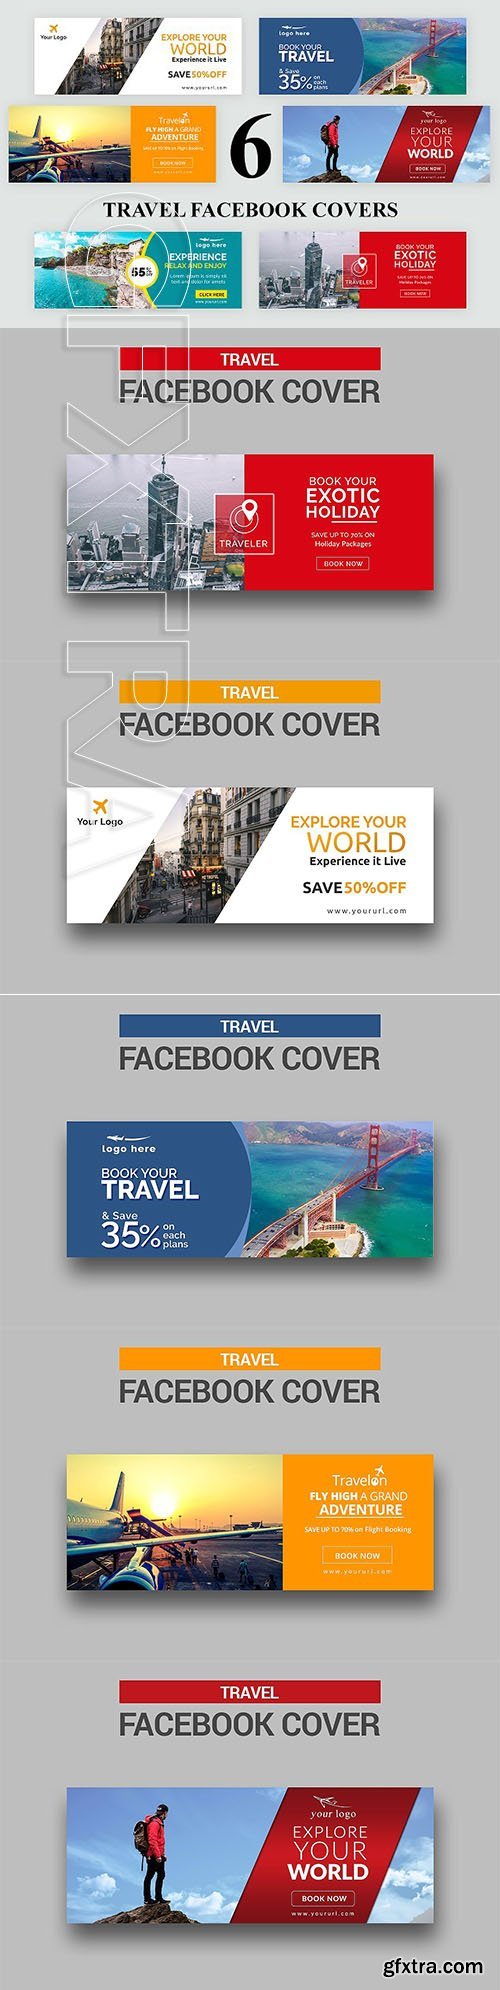 CreativeMarket - 6 Travel Facebook Covers 2577283